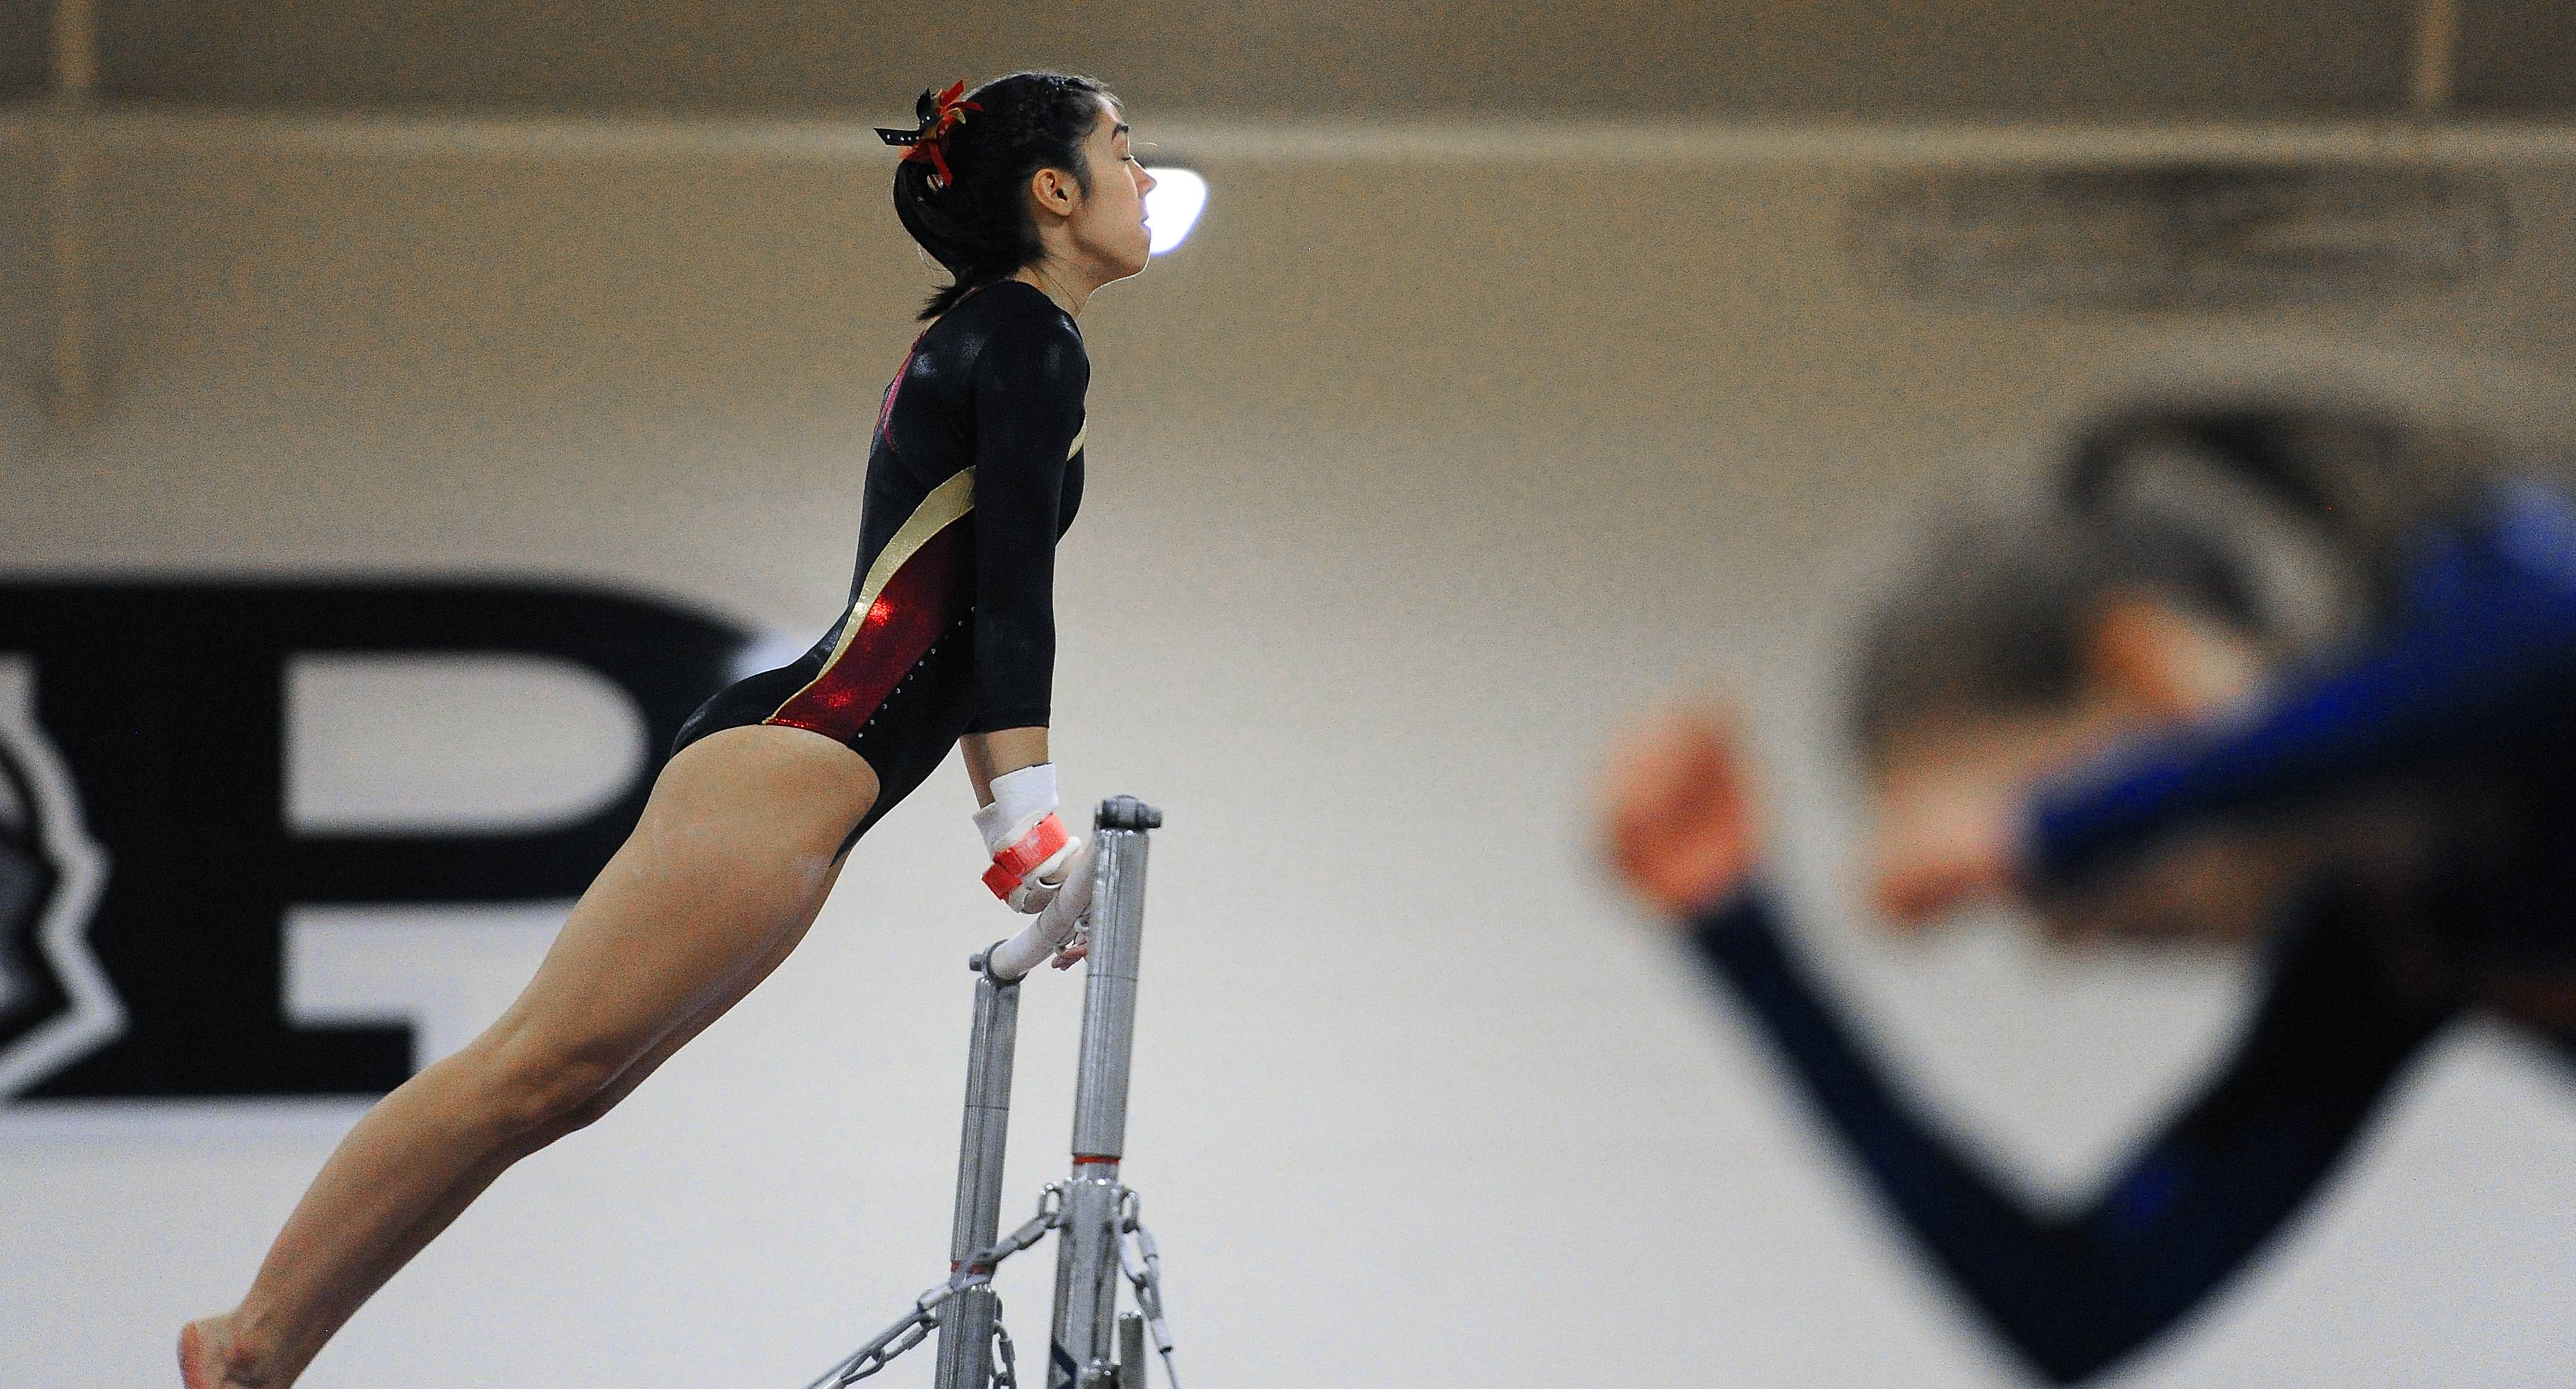 Schaumburg's Chalisa Kulprathipanja competes on the uneven parallel bars at Prospect on Saturday.